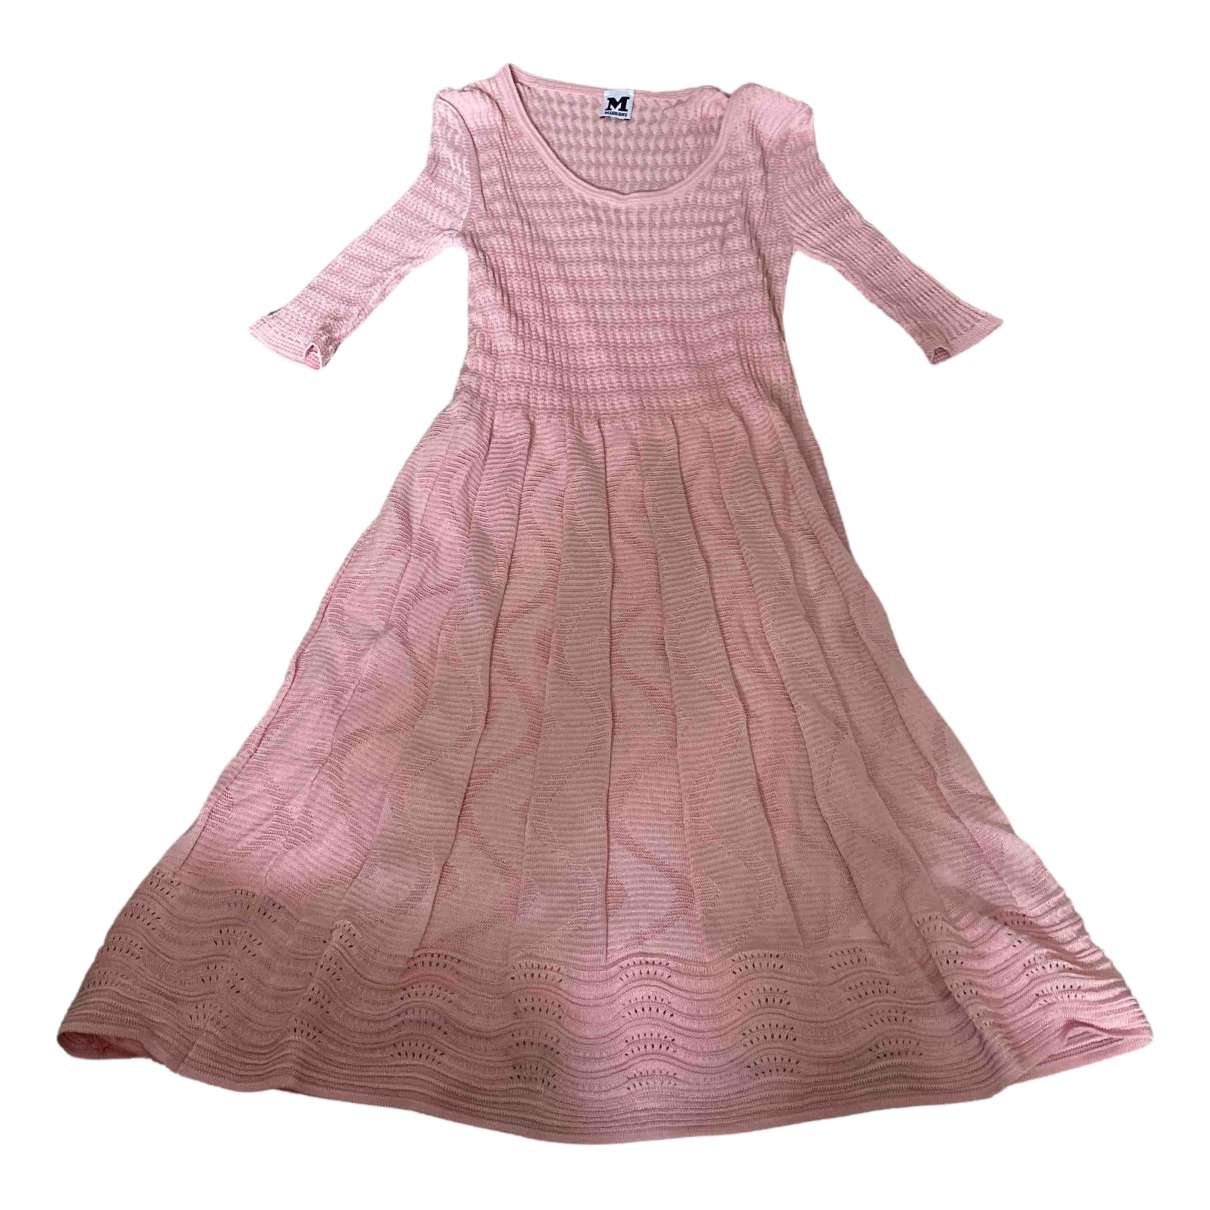 M Missoni \N Kleid in  Rosa Baumwolle